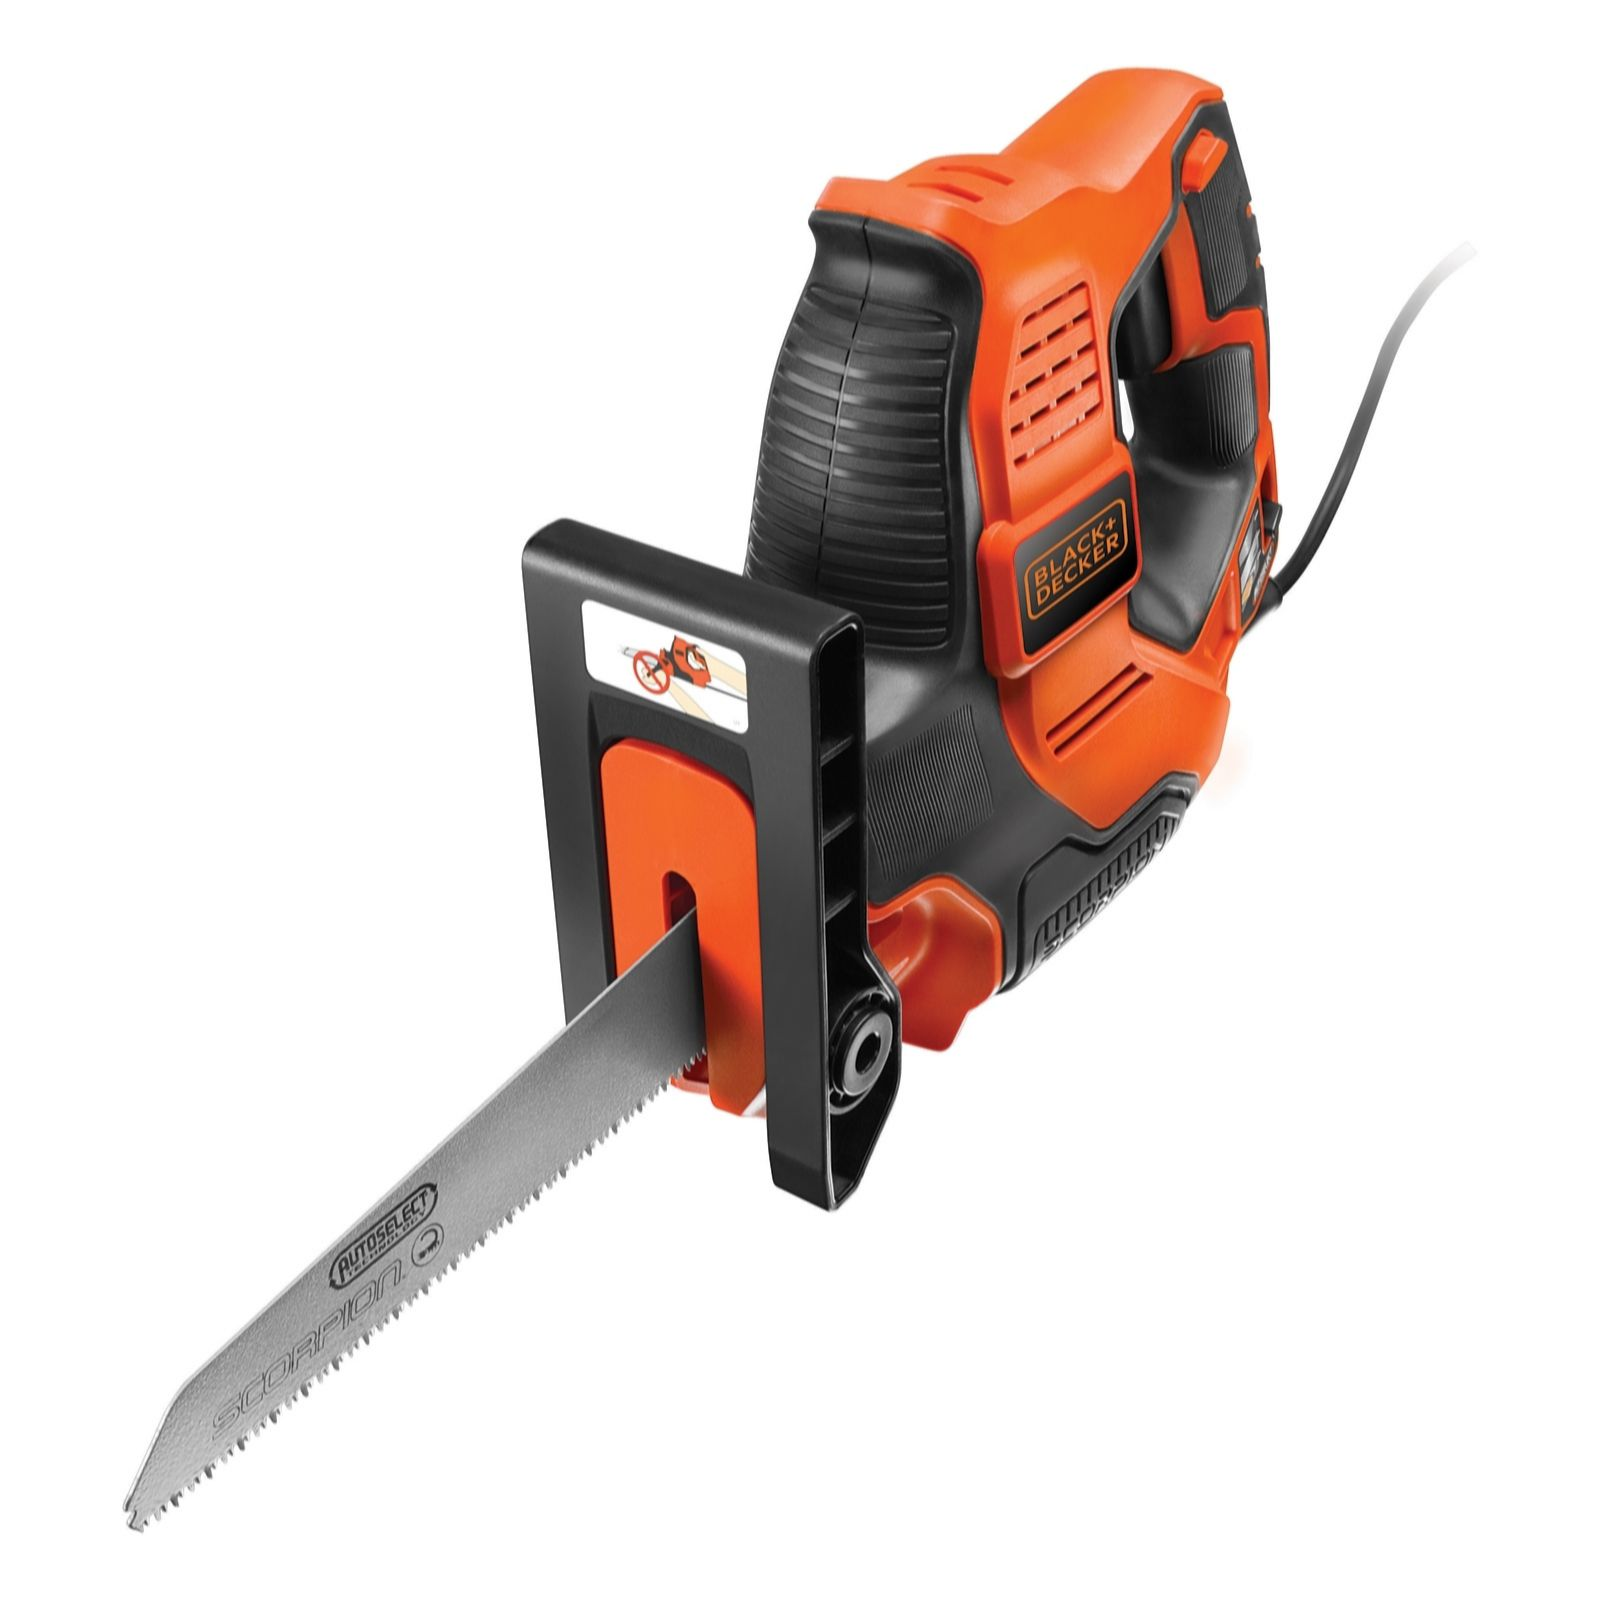 Black & Decker 500w Scorpion Powered Hand Saw with Kitbox - 507940